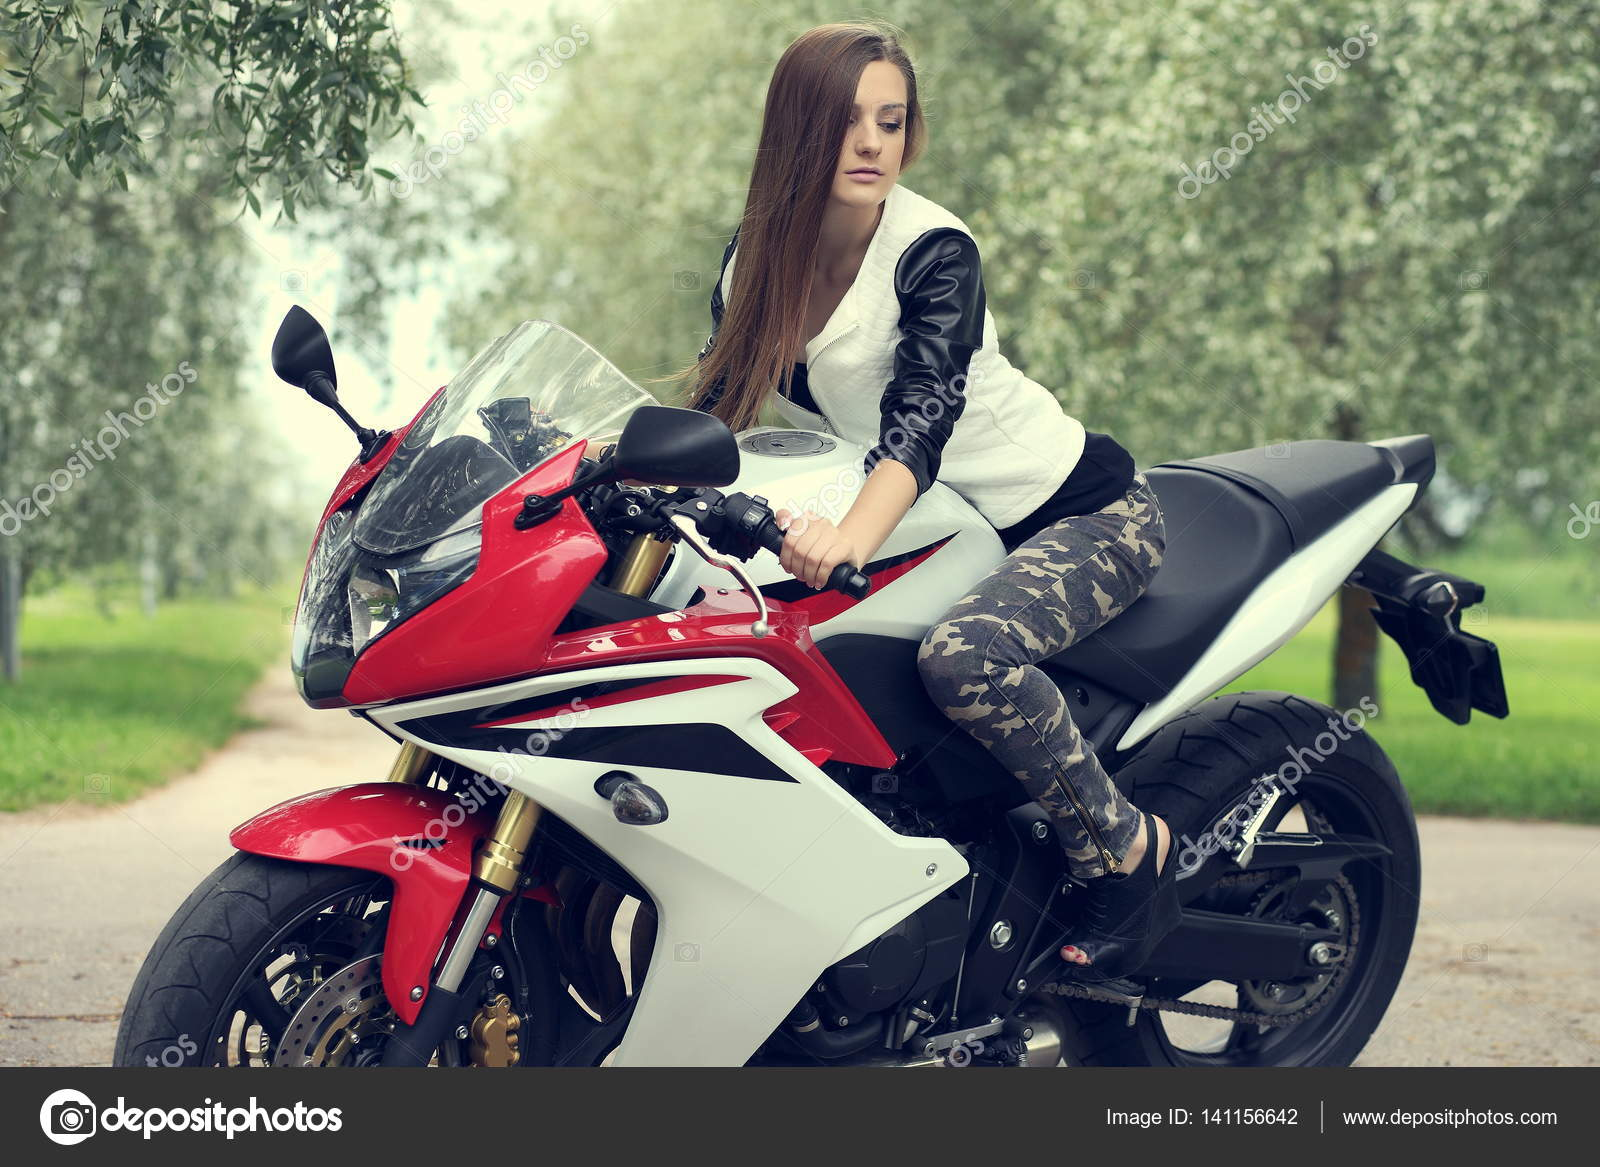 Phrase... Nude girl posing on motorcycle simply matchless